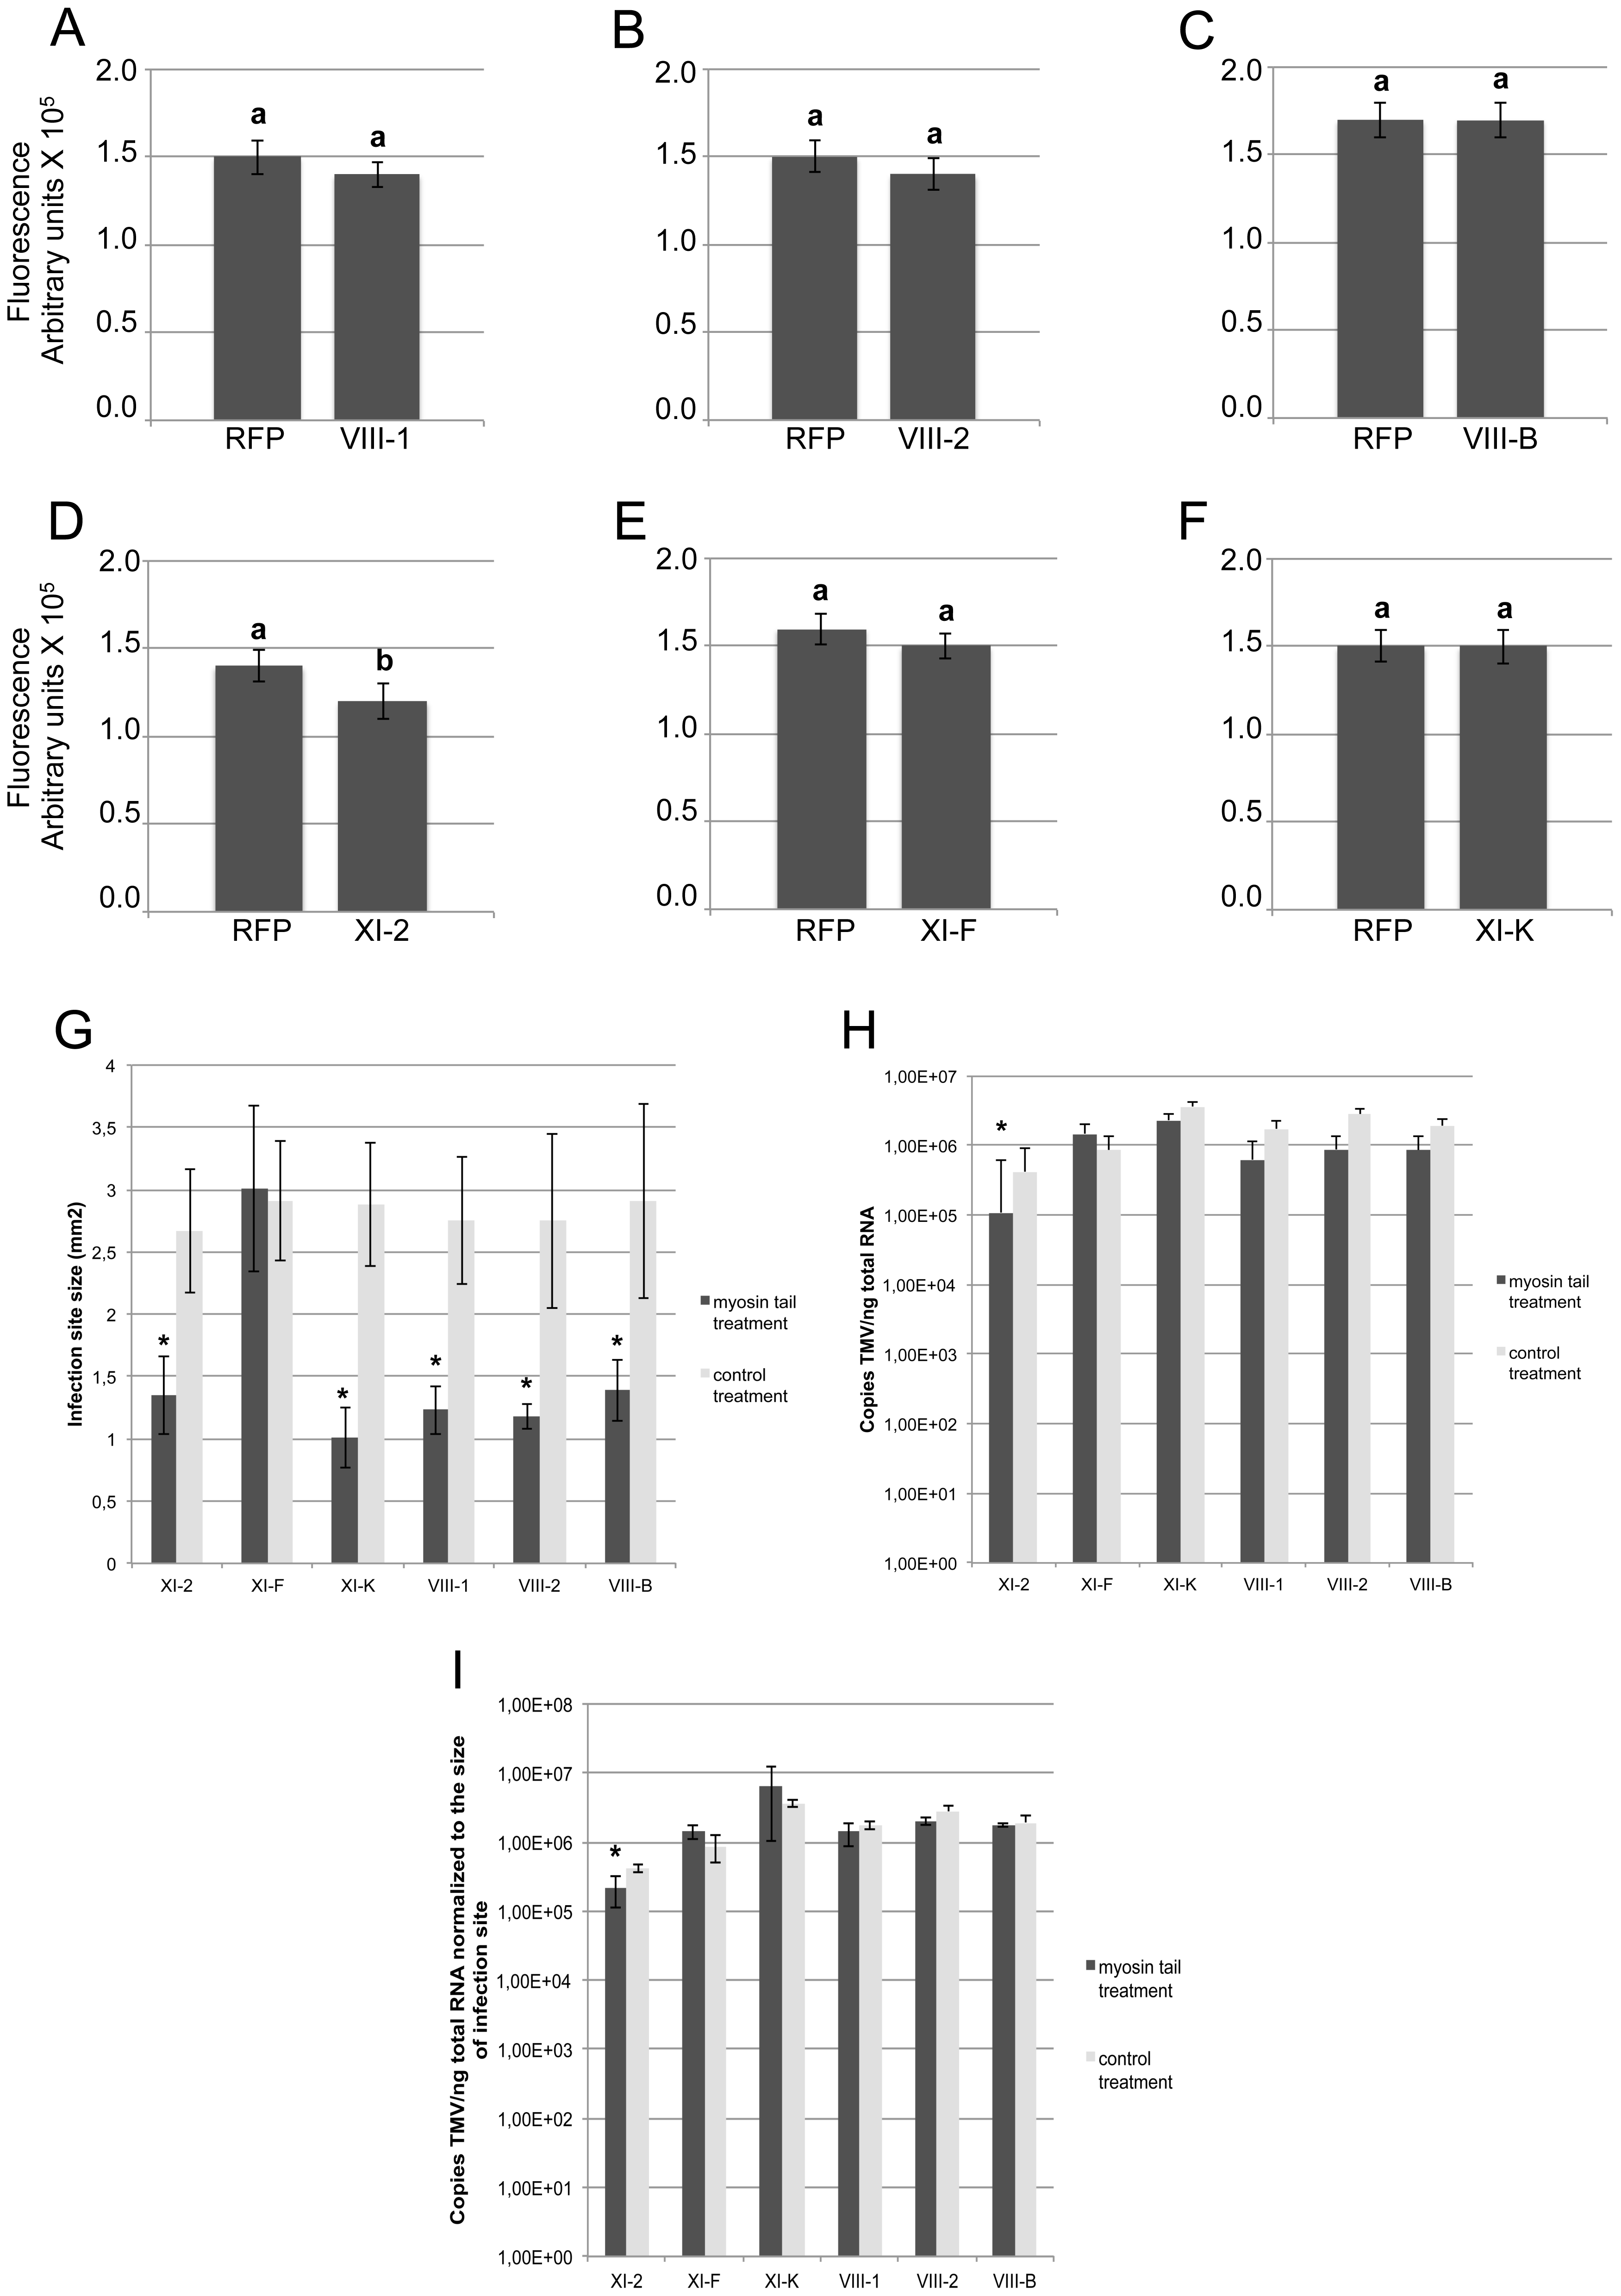 Transient expression of myosin tail XI-2, but not the expression of any of the other tested myosin tails, affects virus replication.